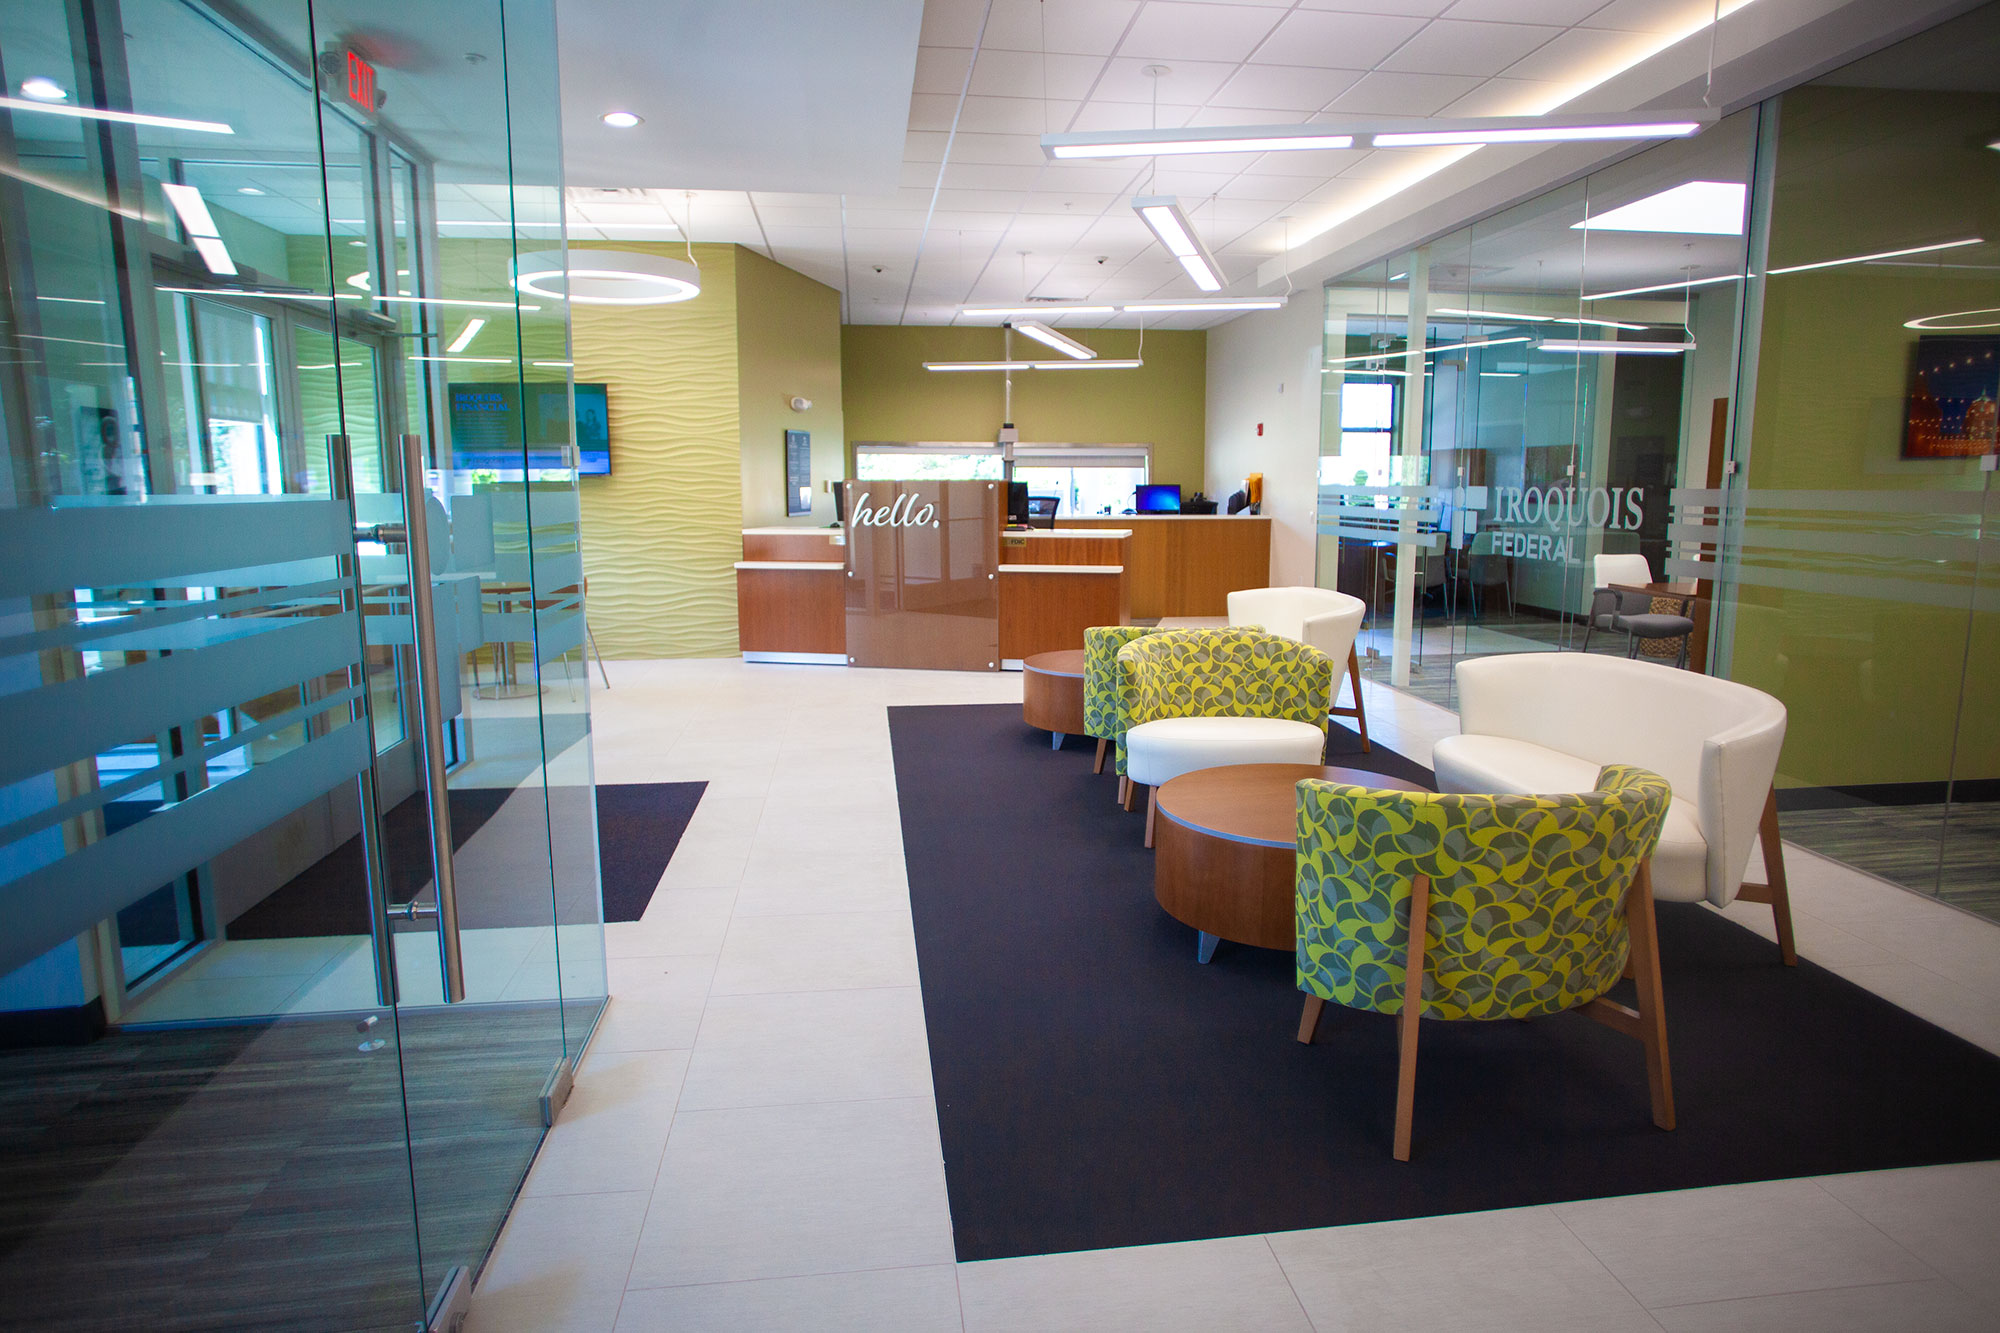 Iroquois Federal Bank Interior 2